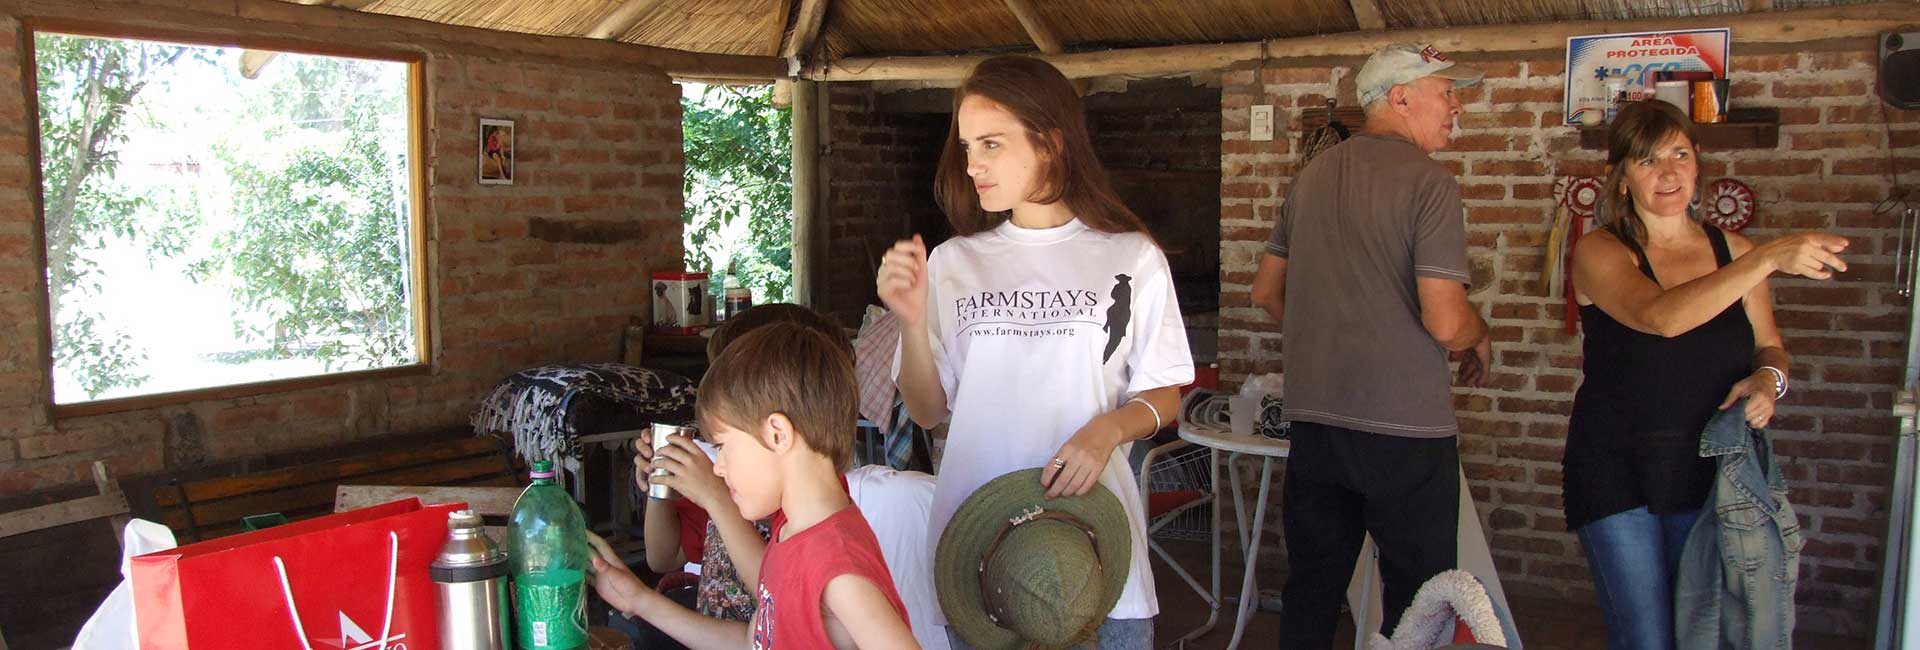 Living on an Estancia Argentina